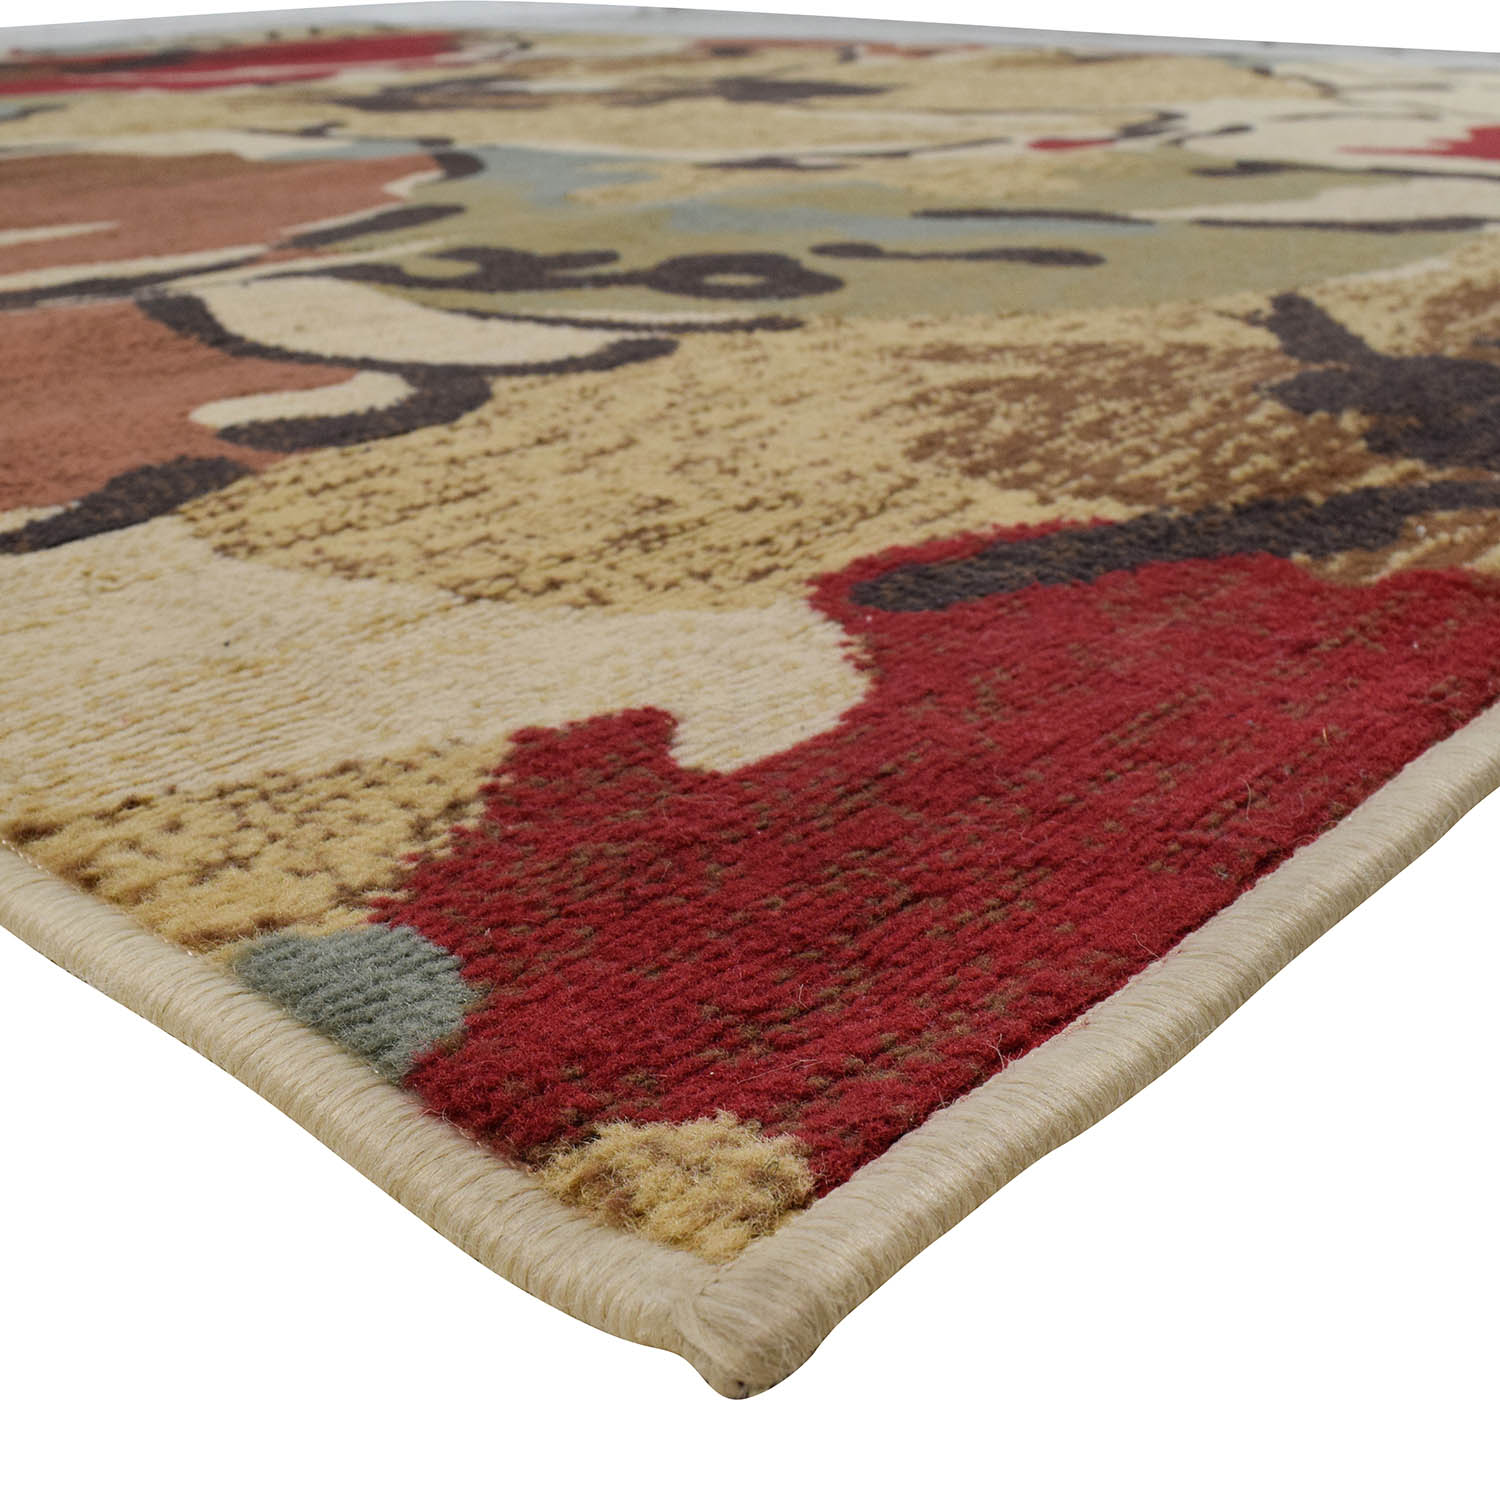 shop Laguna Collection Laguna Tayse 4570 Floral Rug online